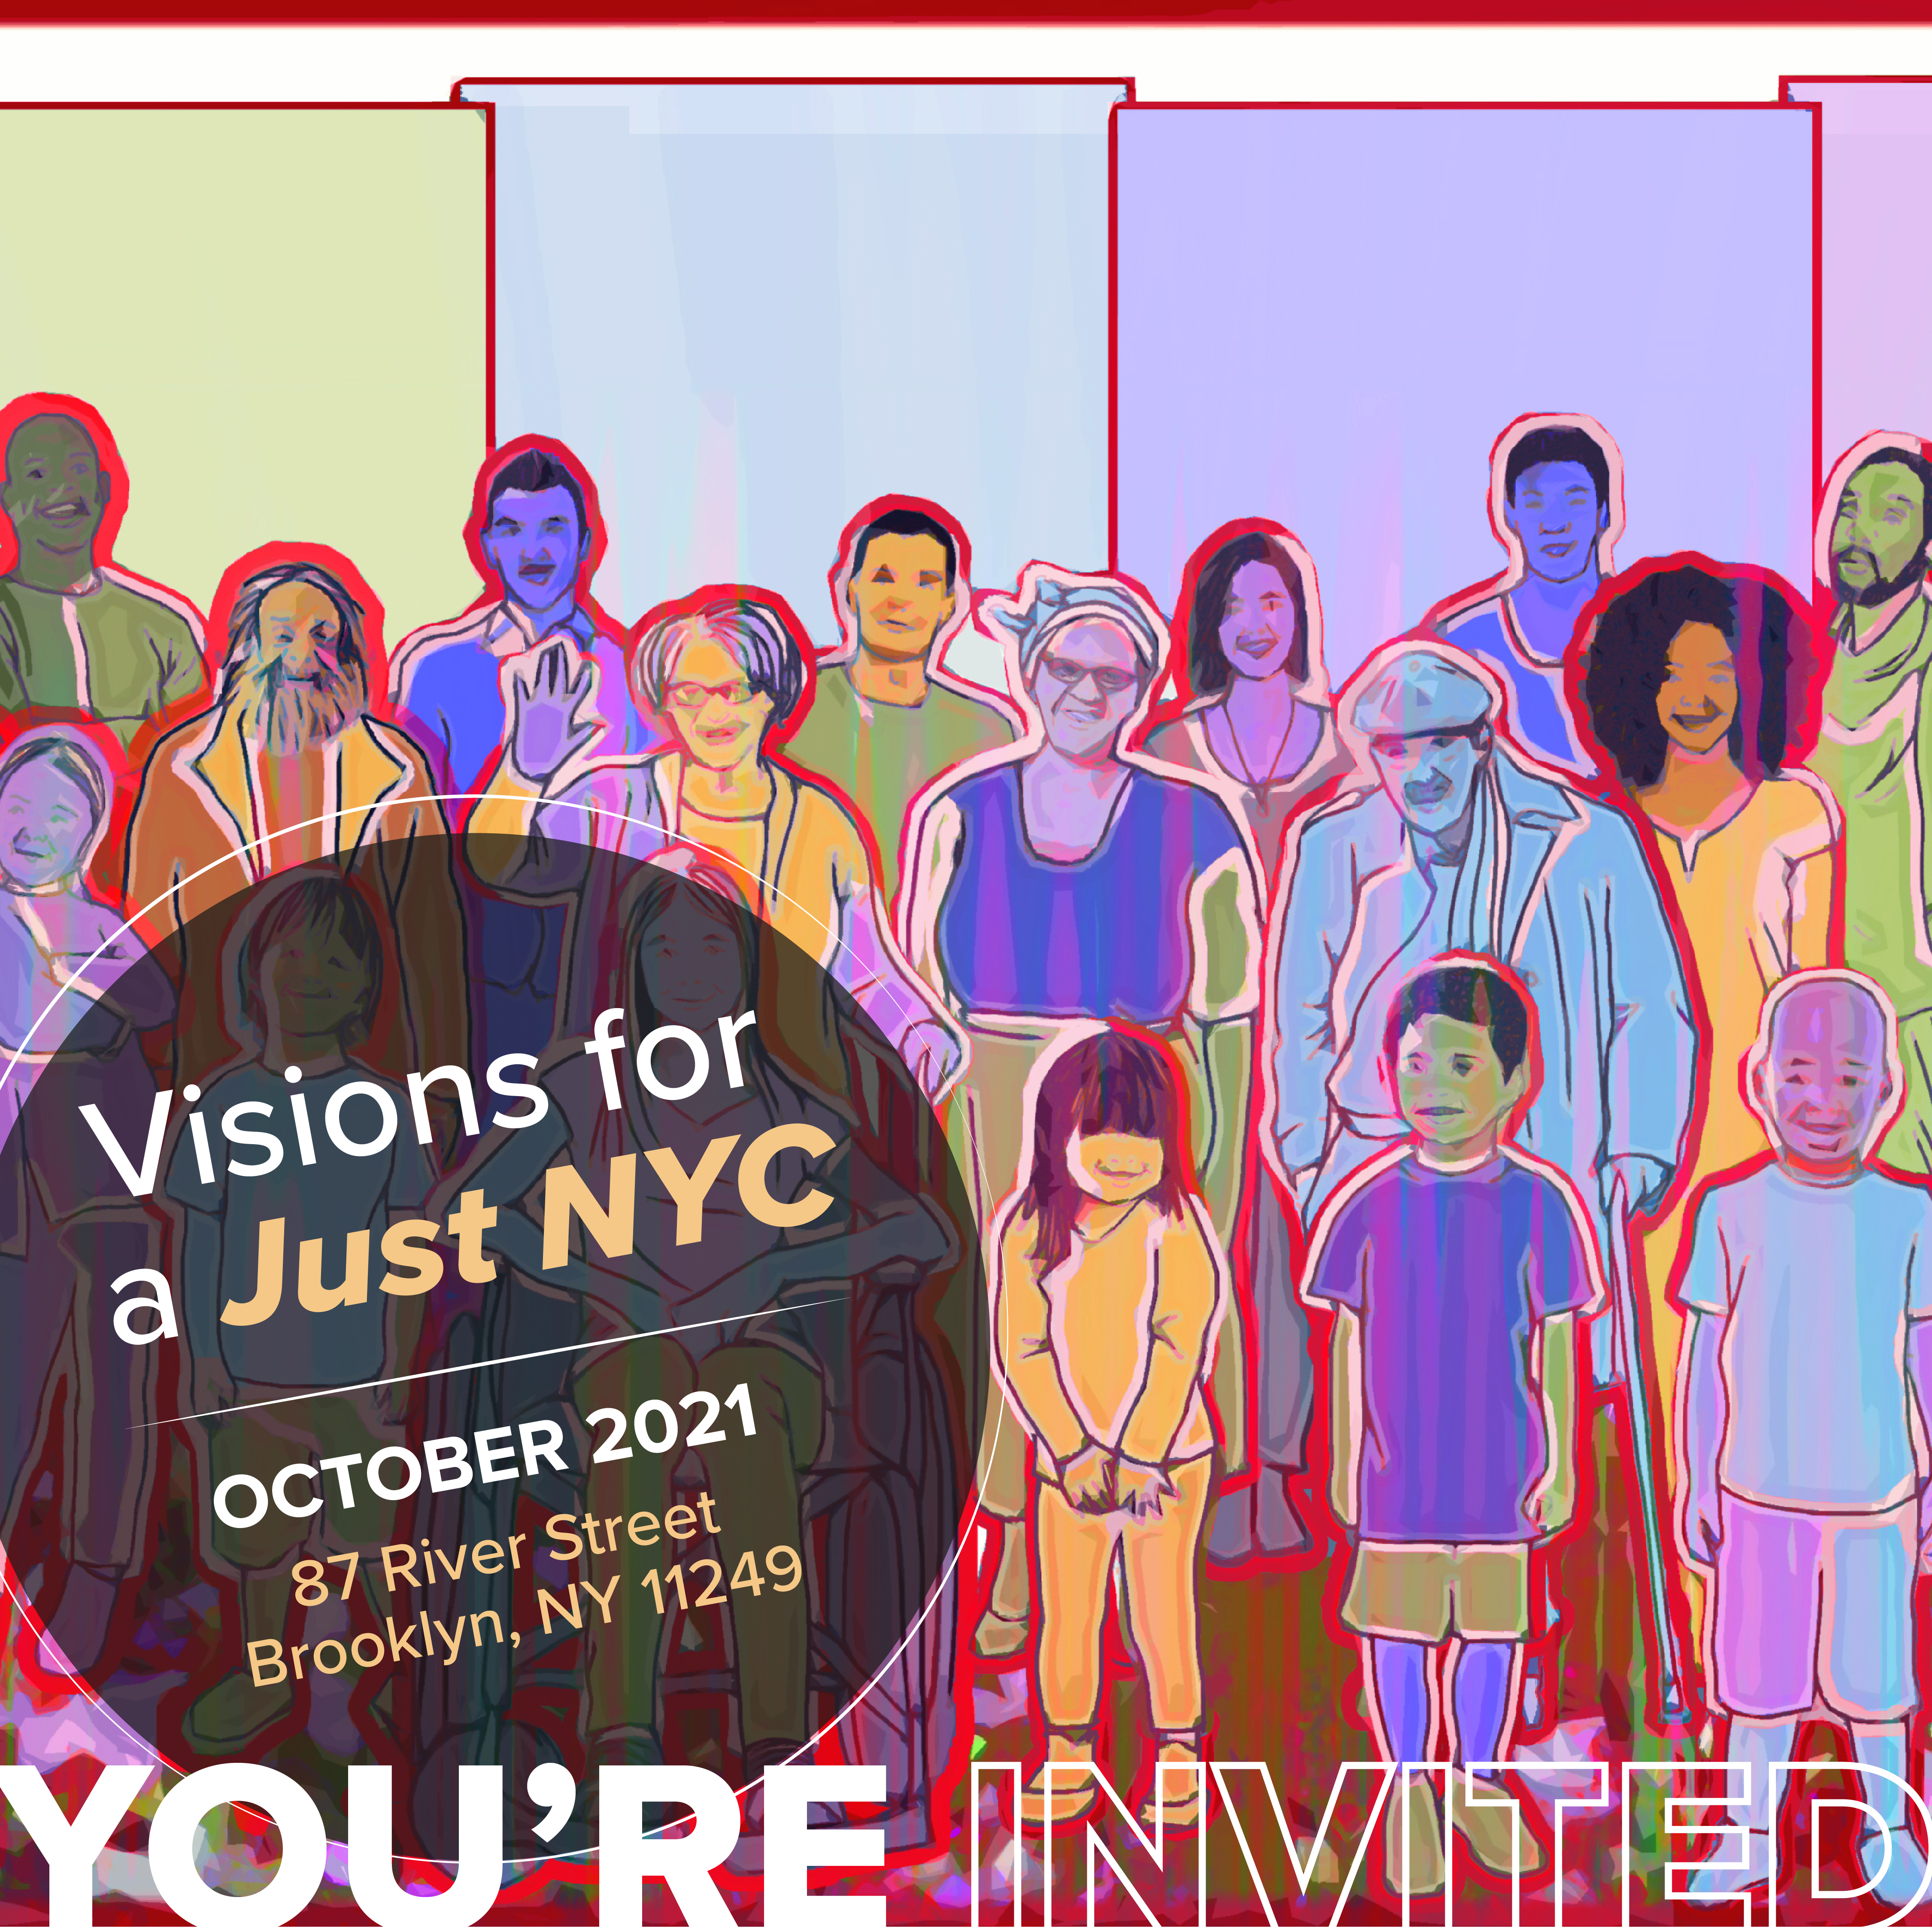 A colorful mural of people with various identities standing together. The text reads: You're invited! Visions for a Just NYC. October 2021, Rivers Street Park, Williamsburg.